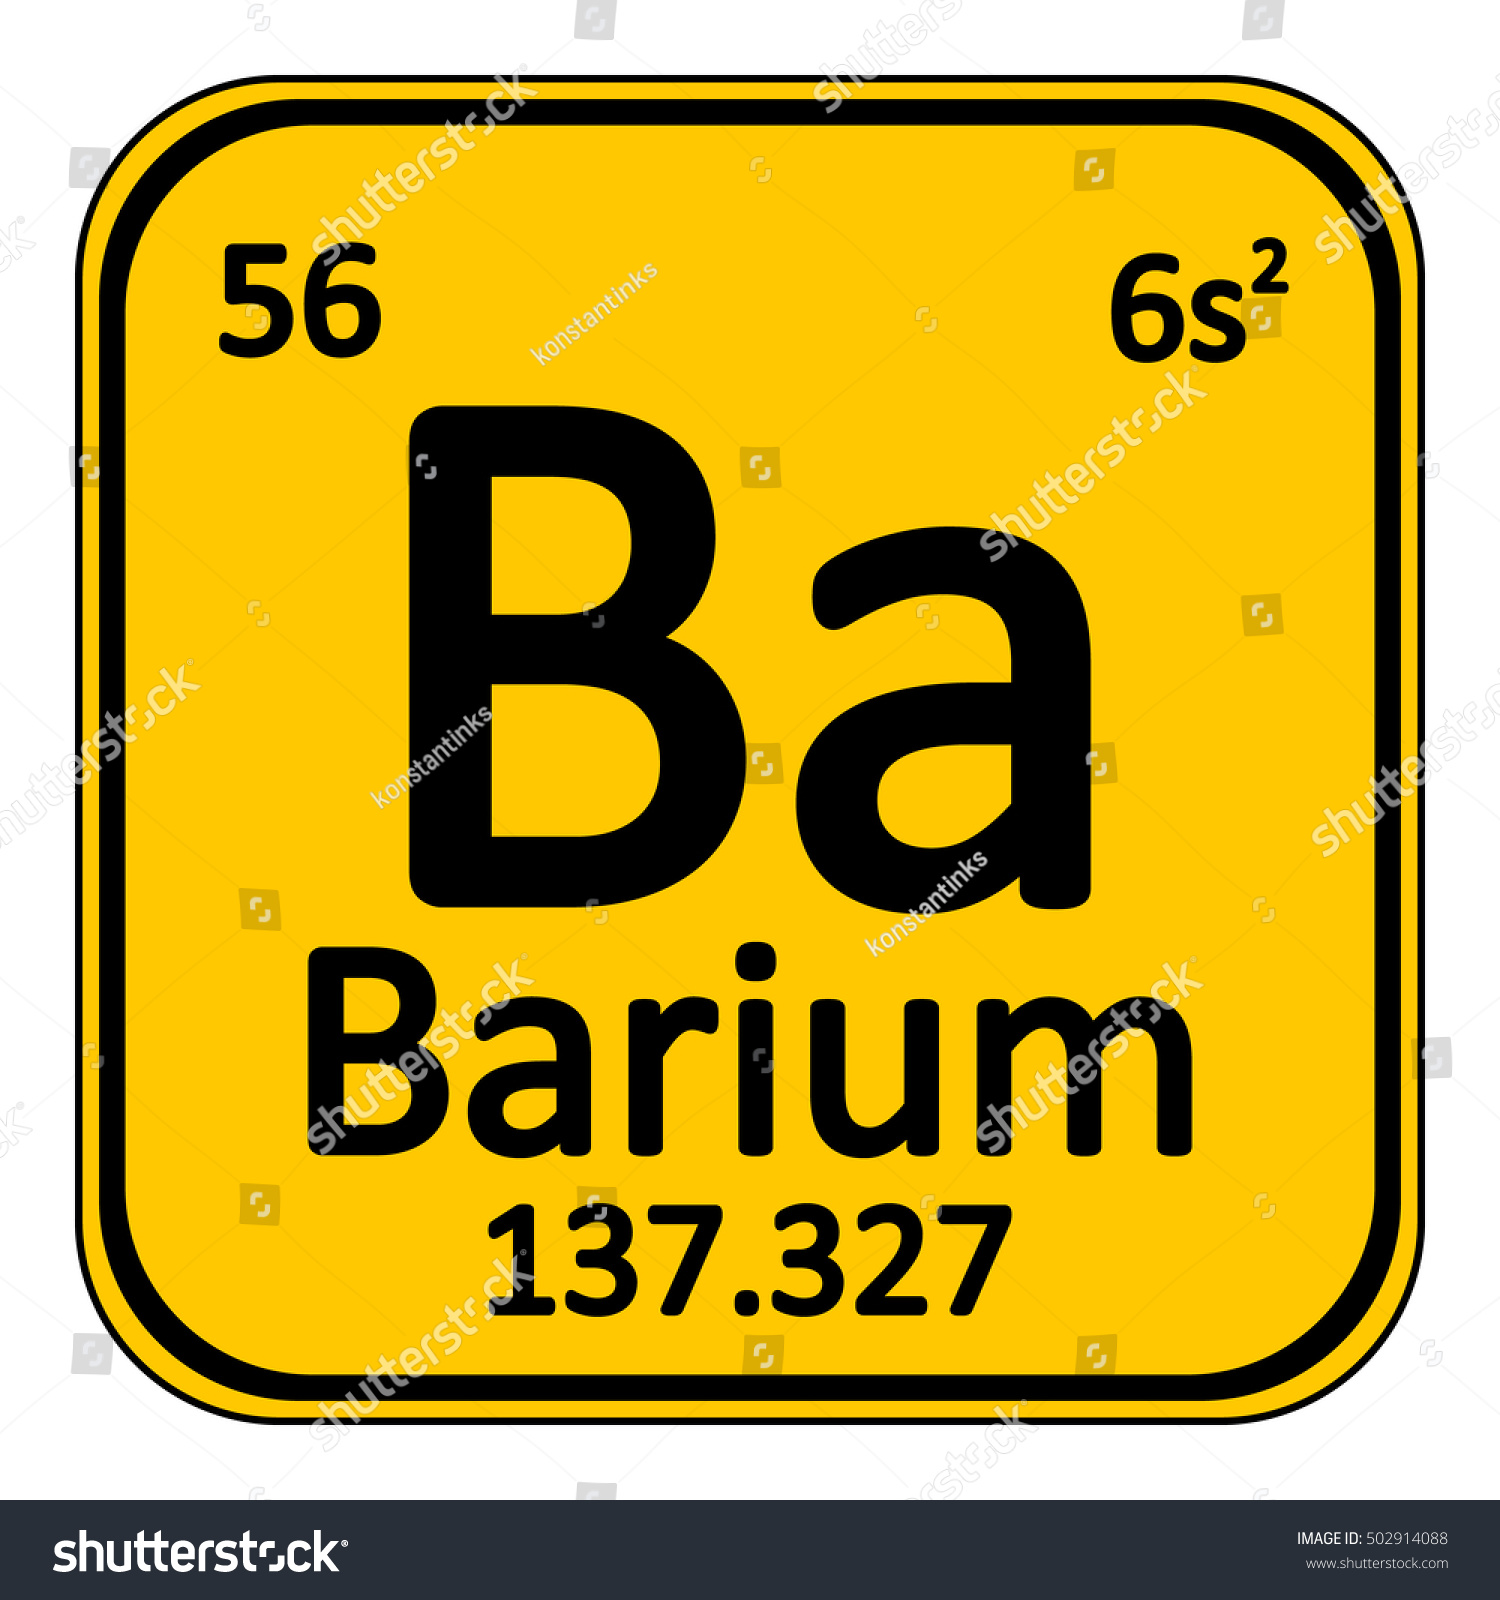 56 element periodic table images periodic table images periodic table element 42 images periodic table images 56 element periodic table image collections periodic table gamestrikefo Image collections